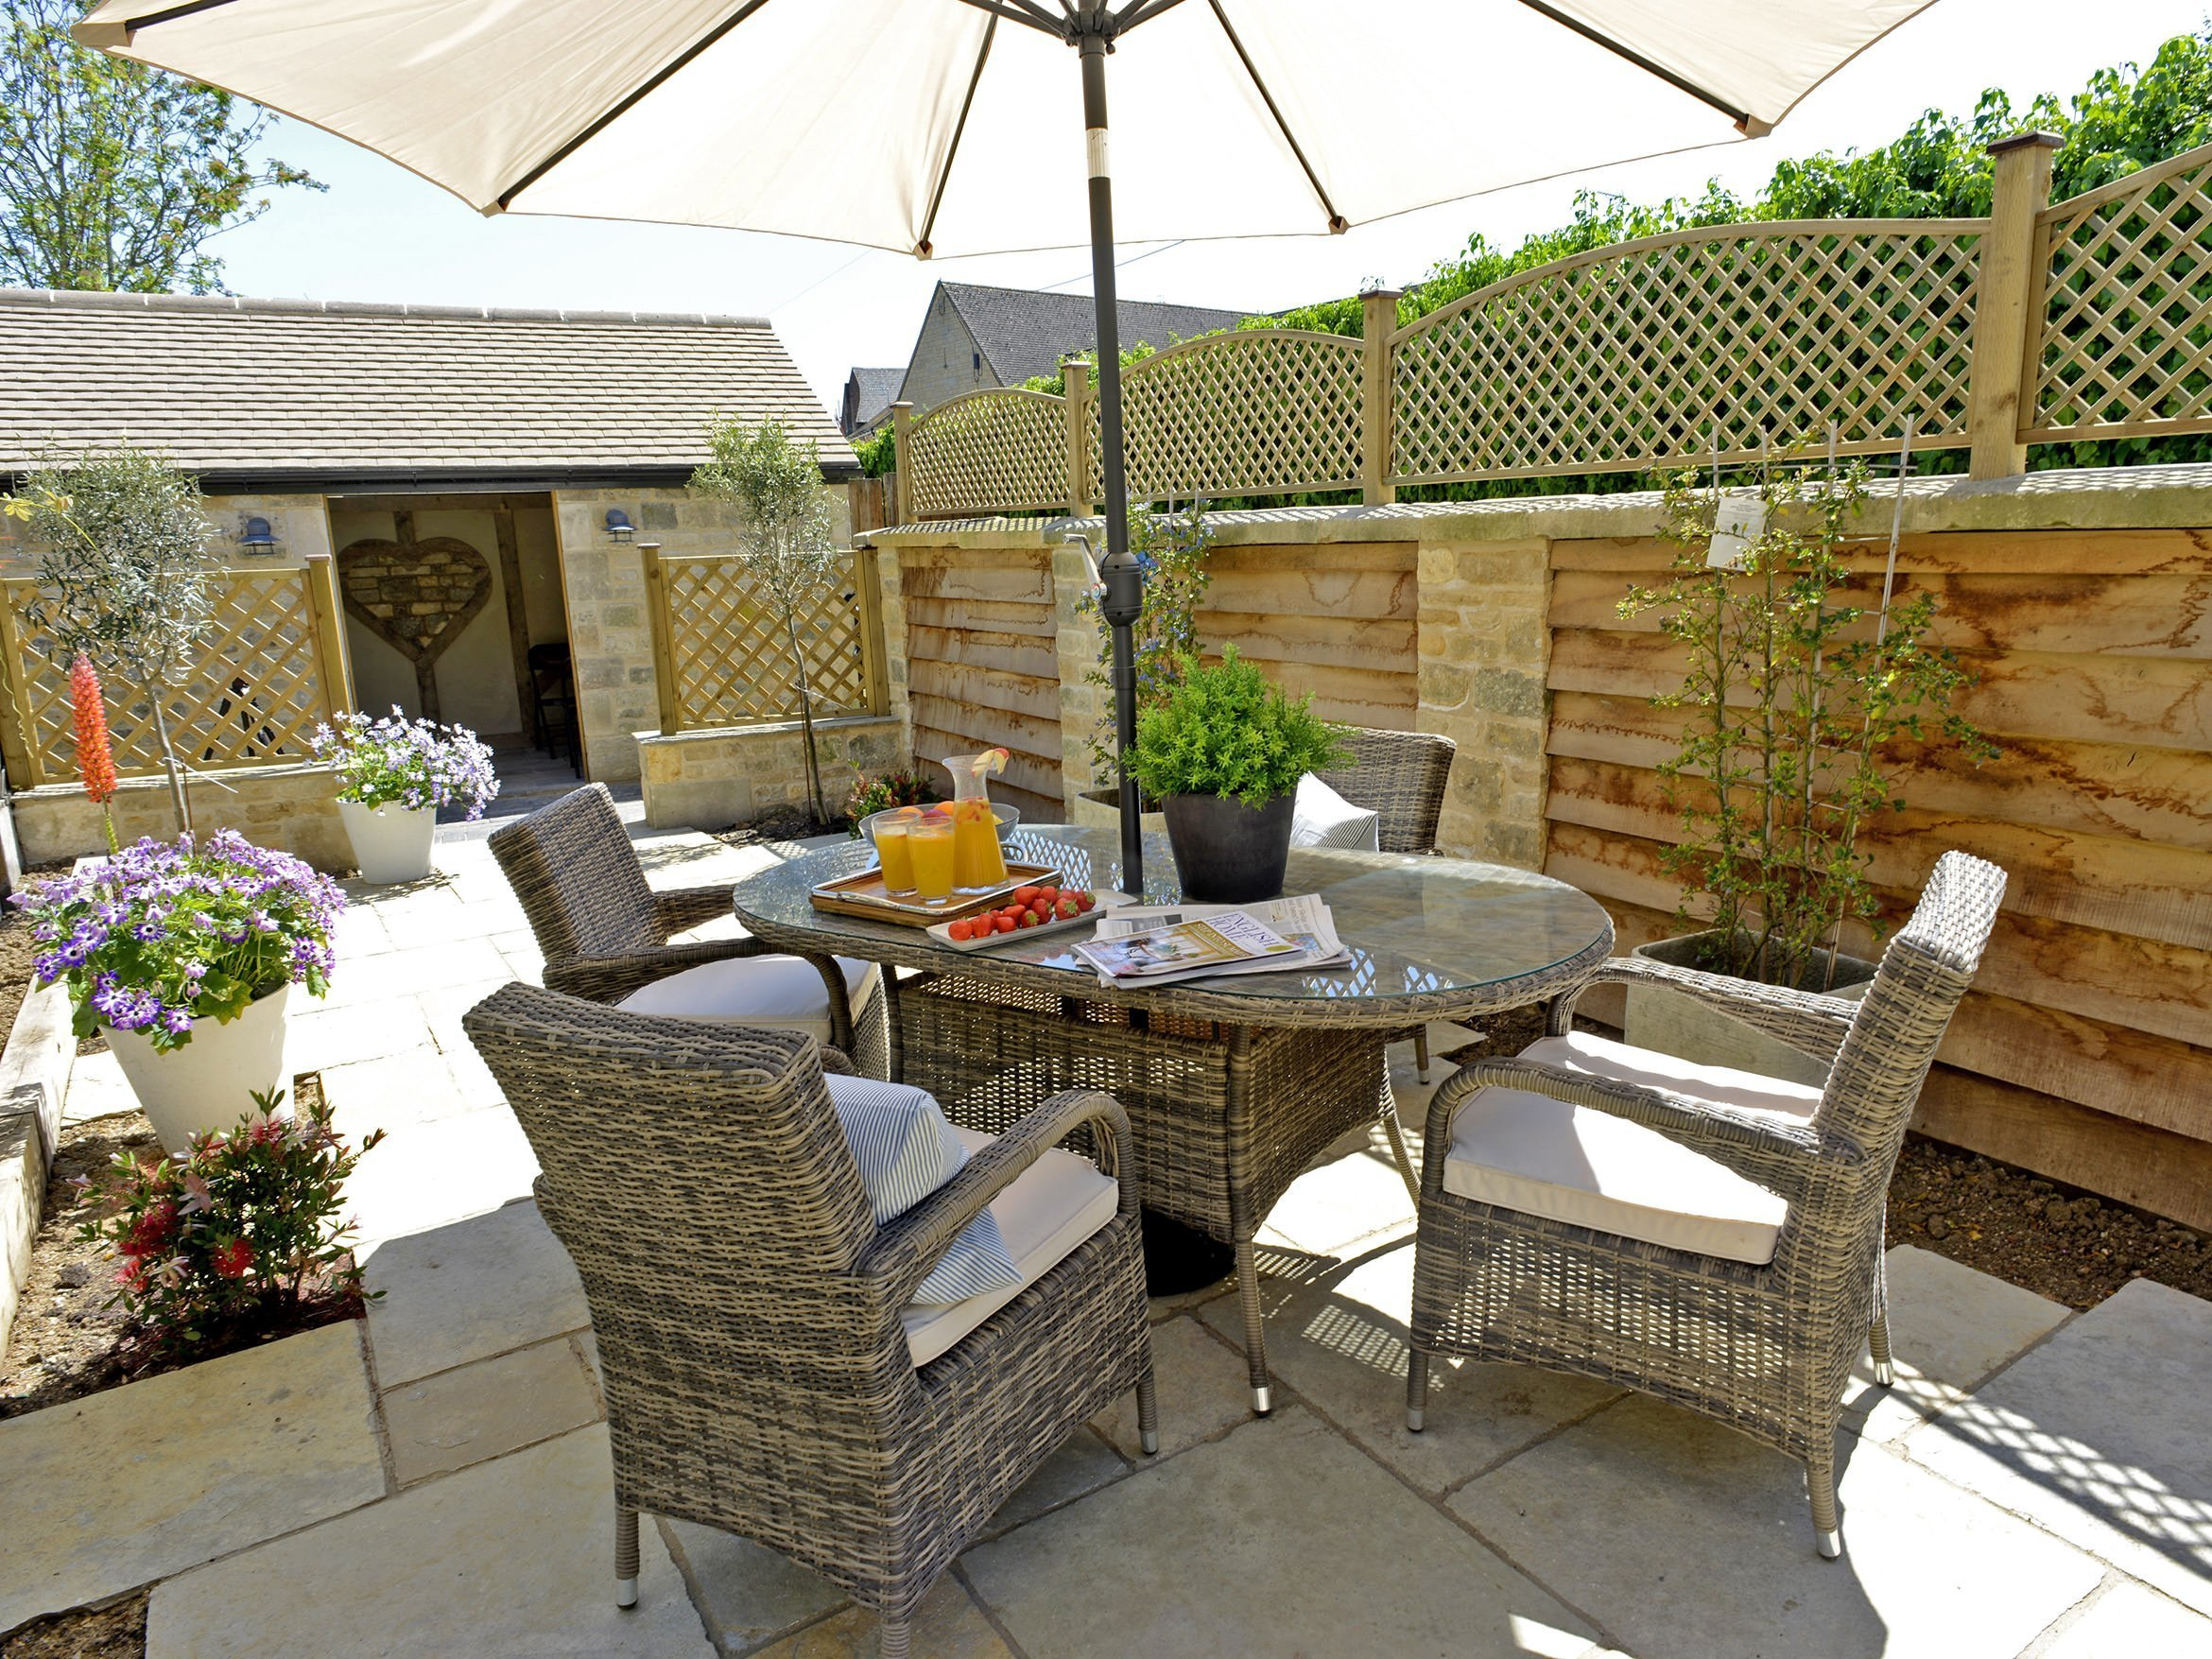 walnut-cottage-moreton-in-marsh-garden-dining